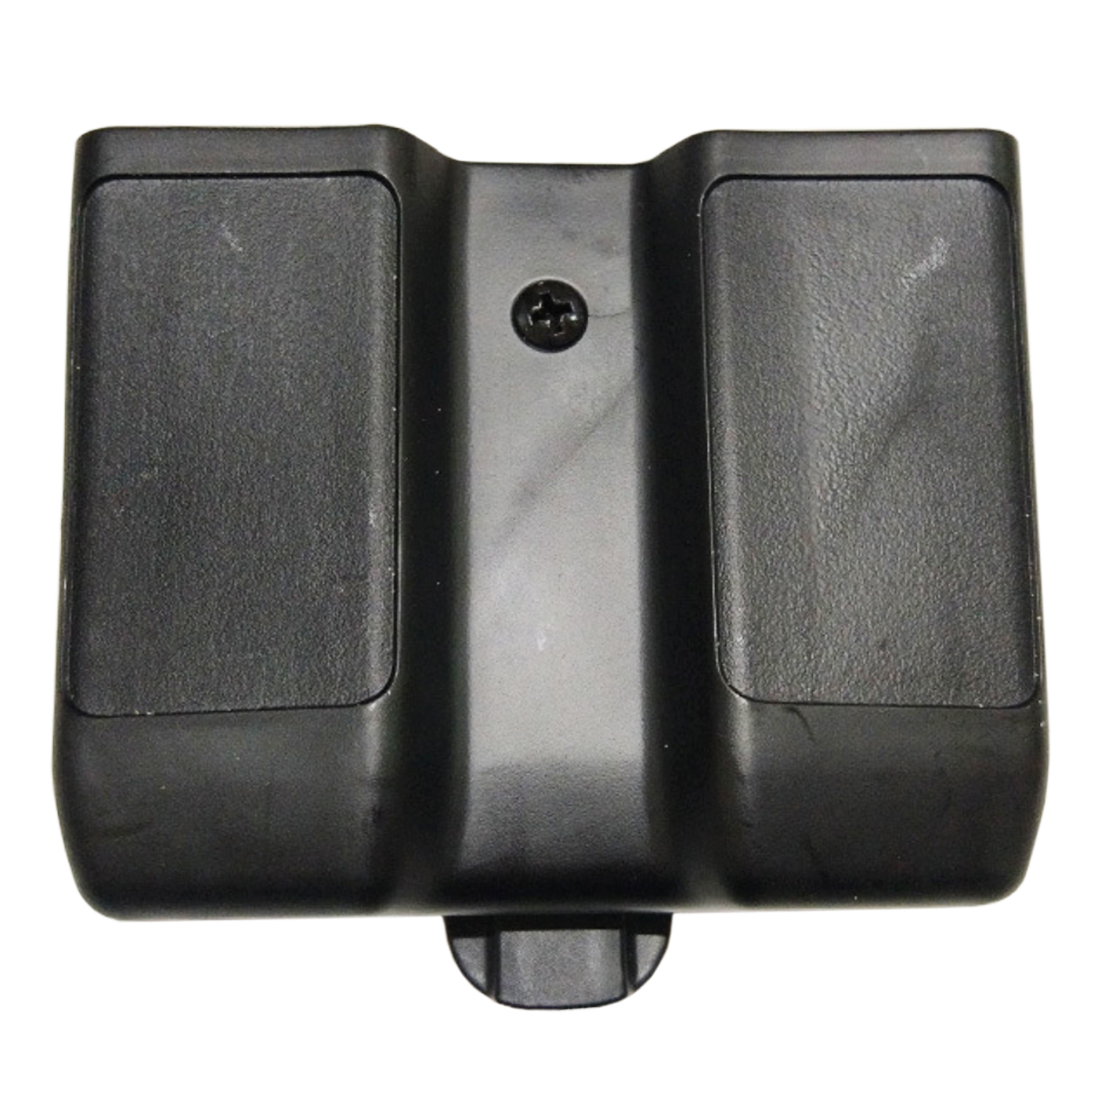 Double Rows Fast Magazine Waist Tactical Fast Magazine Double Magazine Case Holder for <font><b>M1911</b></font> - Black image